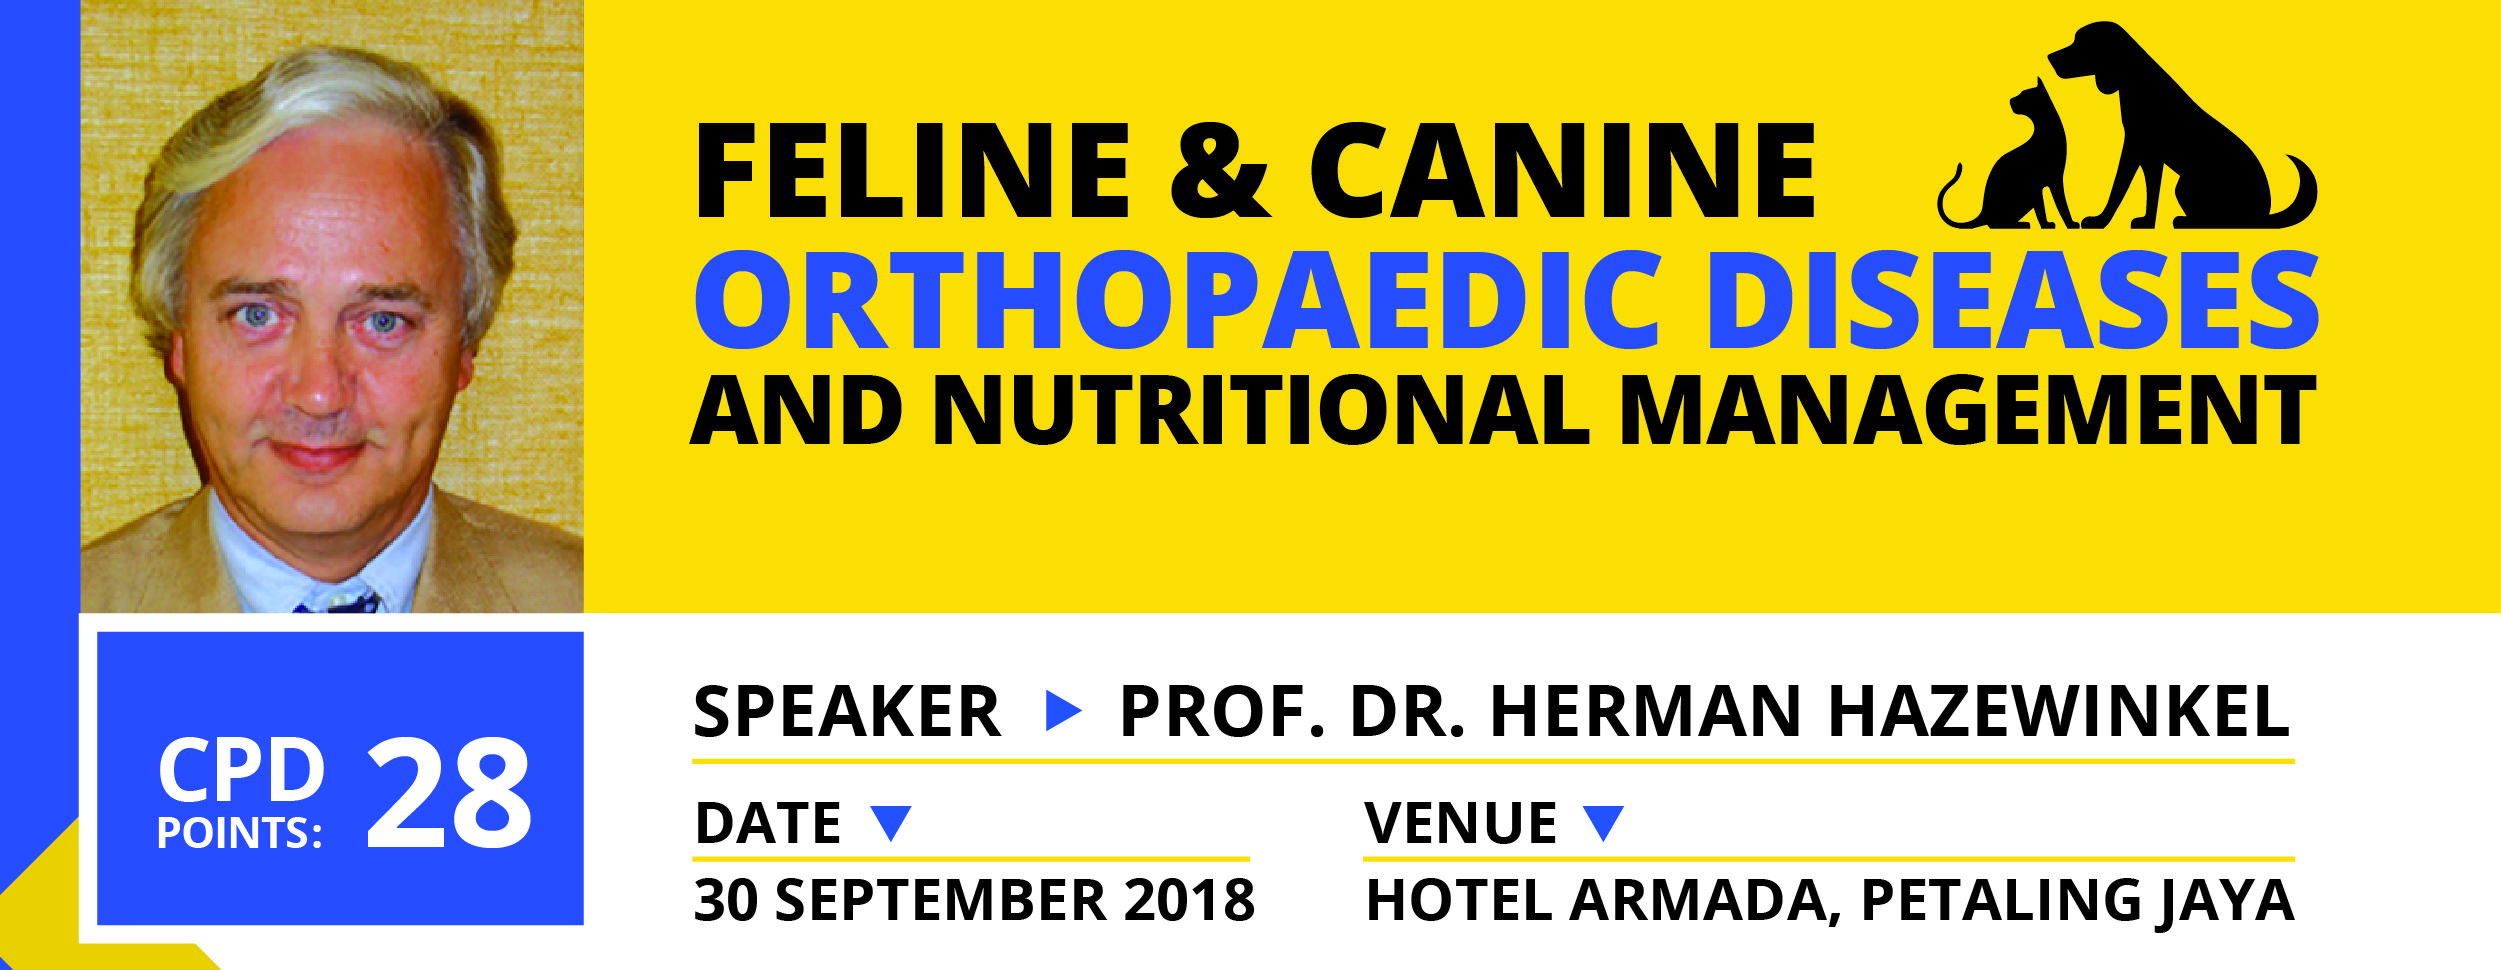 FELINE & CANINE ORTHOPAEDIC DISEASES AND NUTRITIONAL MANAGEMENT